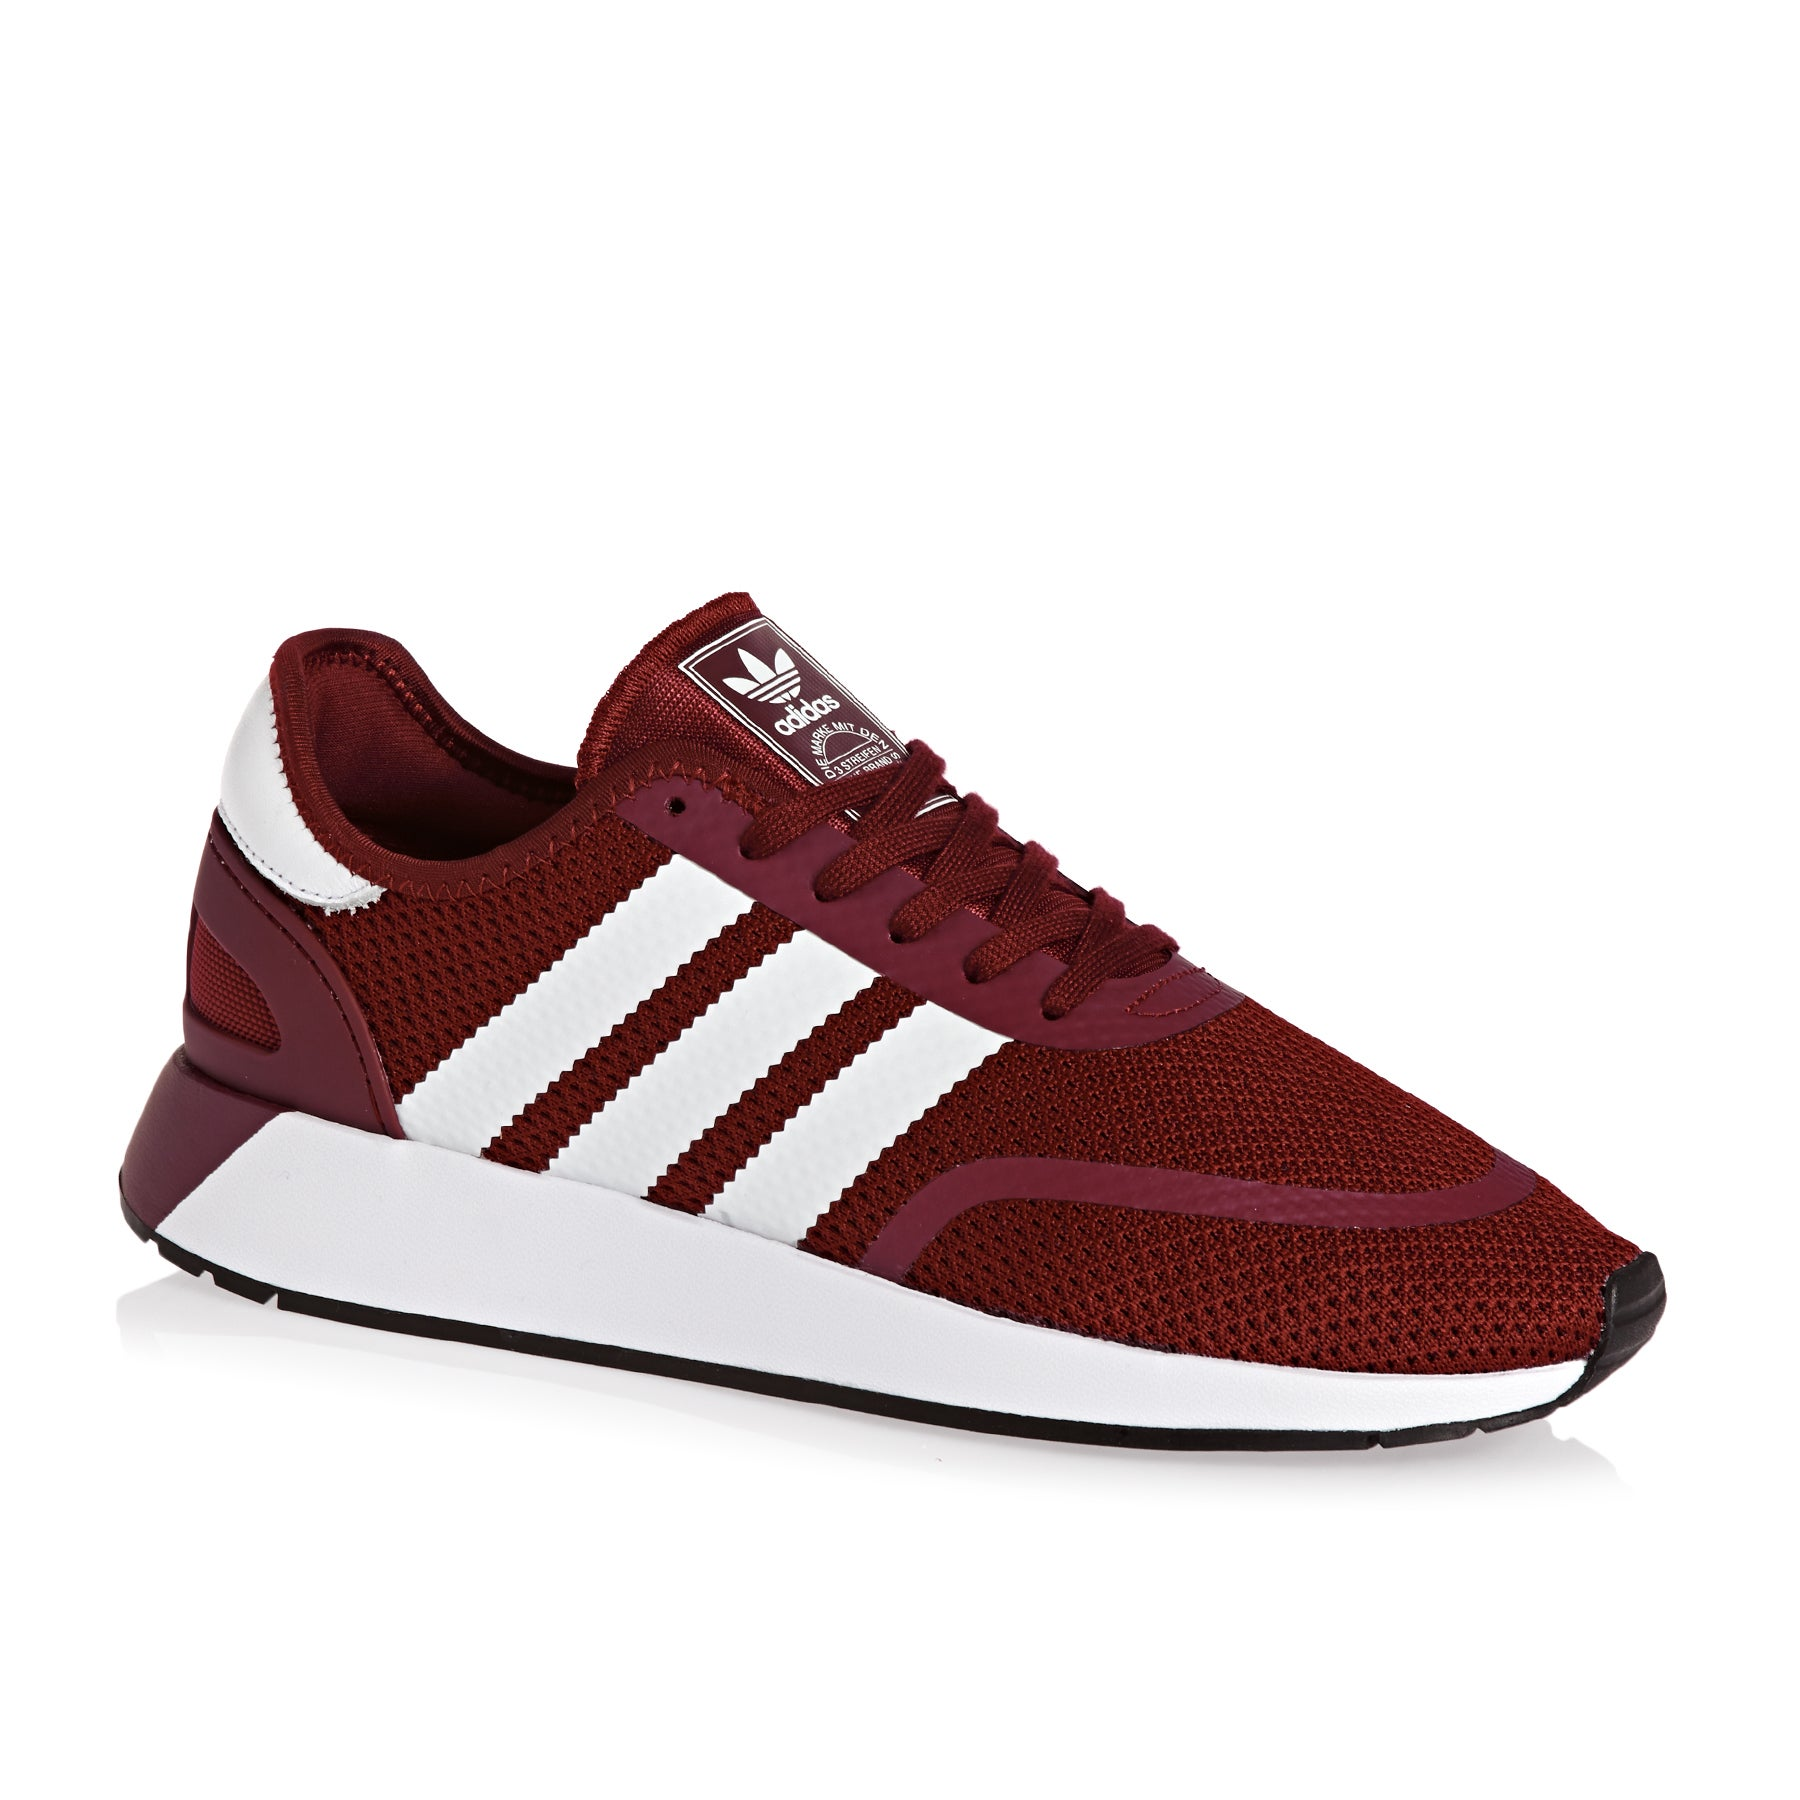 Adidas Originals N-5923 Shoes - Collegiate Burgundy White Black